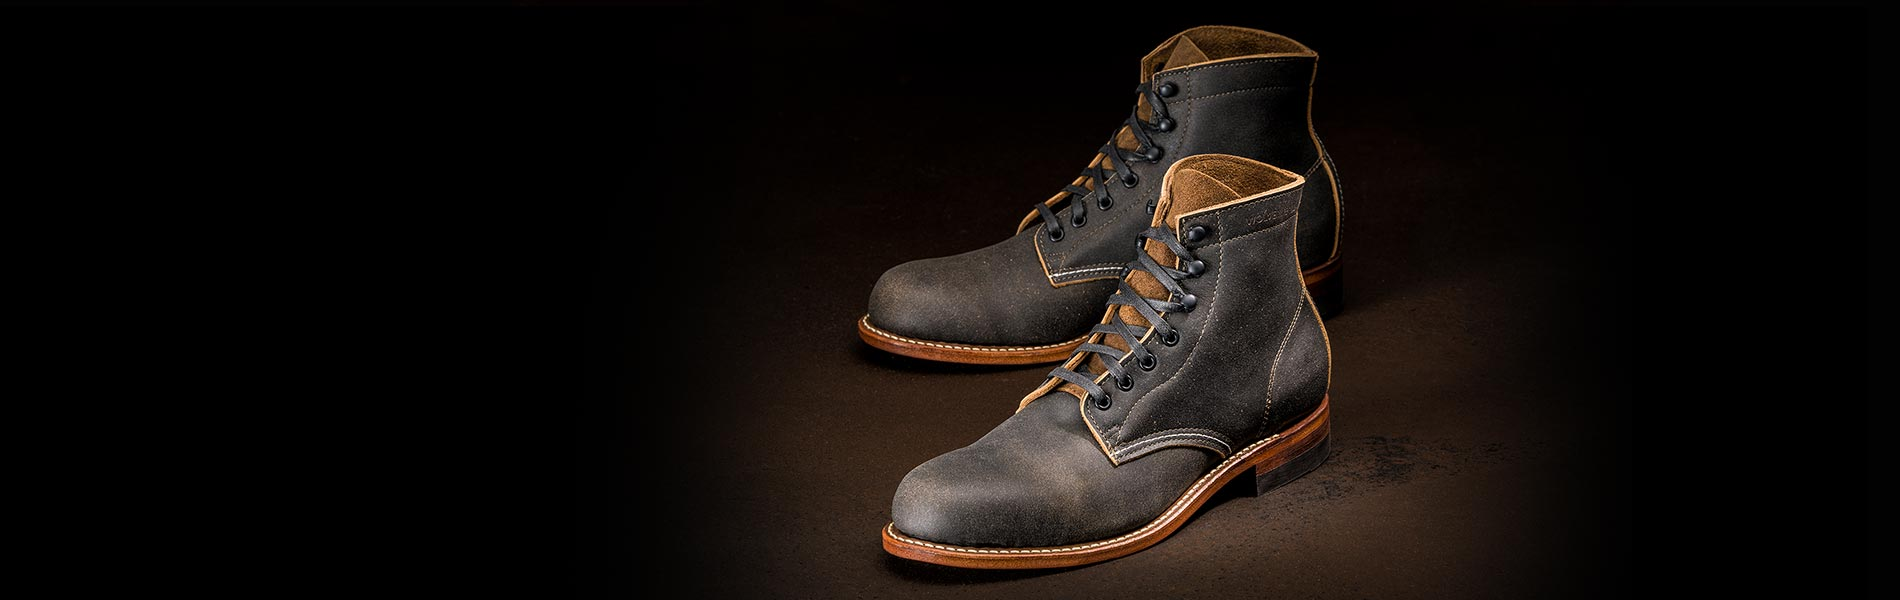 Men's original 1000 mile boot.